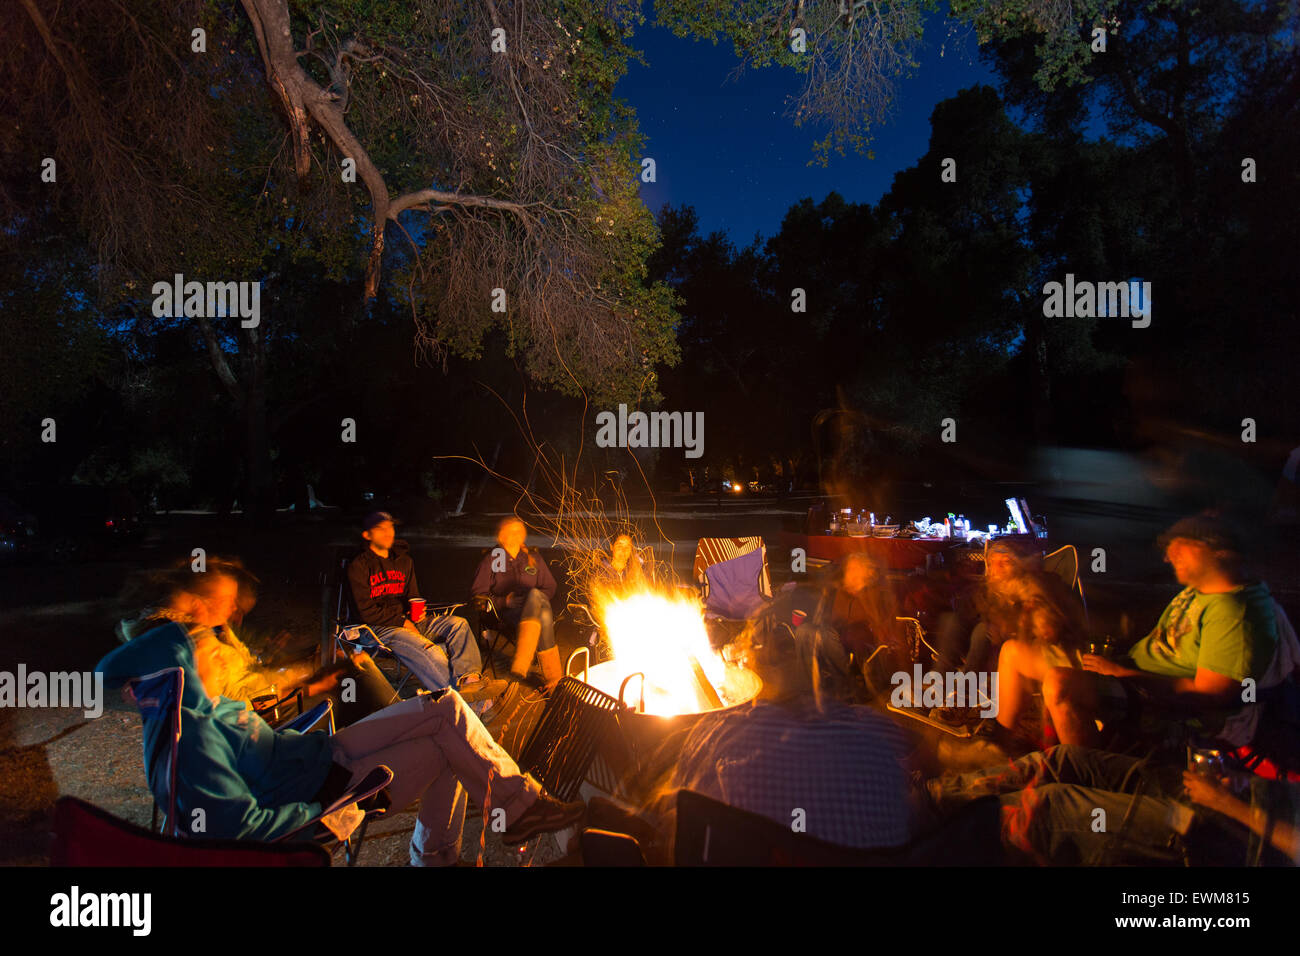 Campfire Story Stock Photos & Campfire Story Stock Images